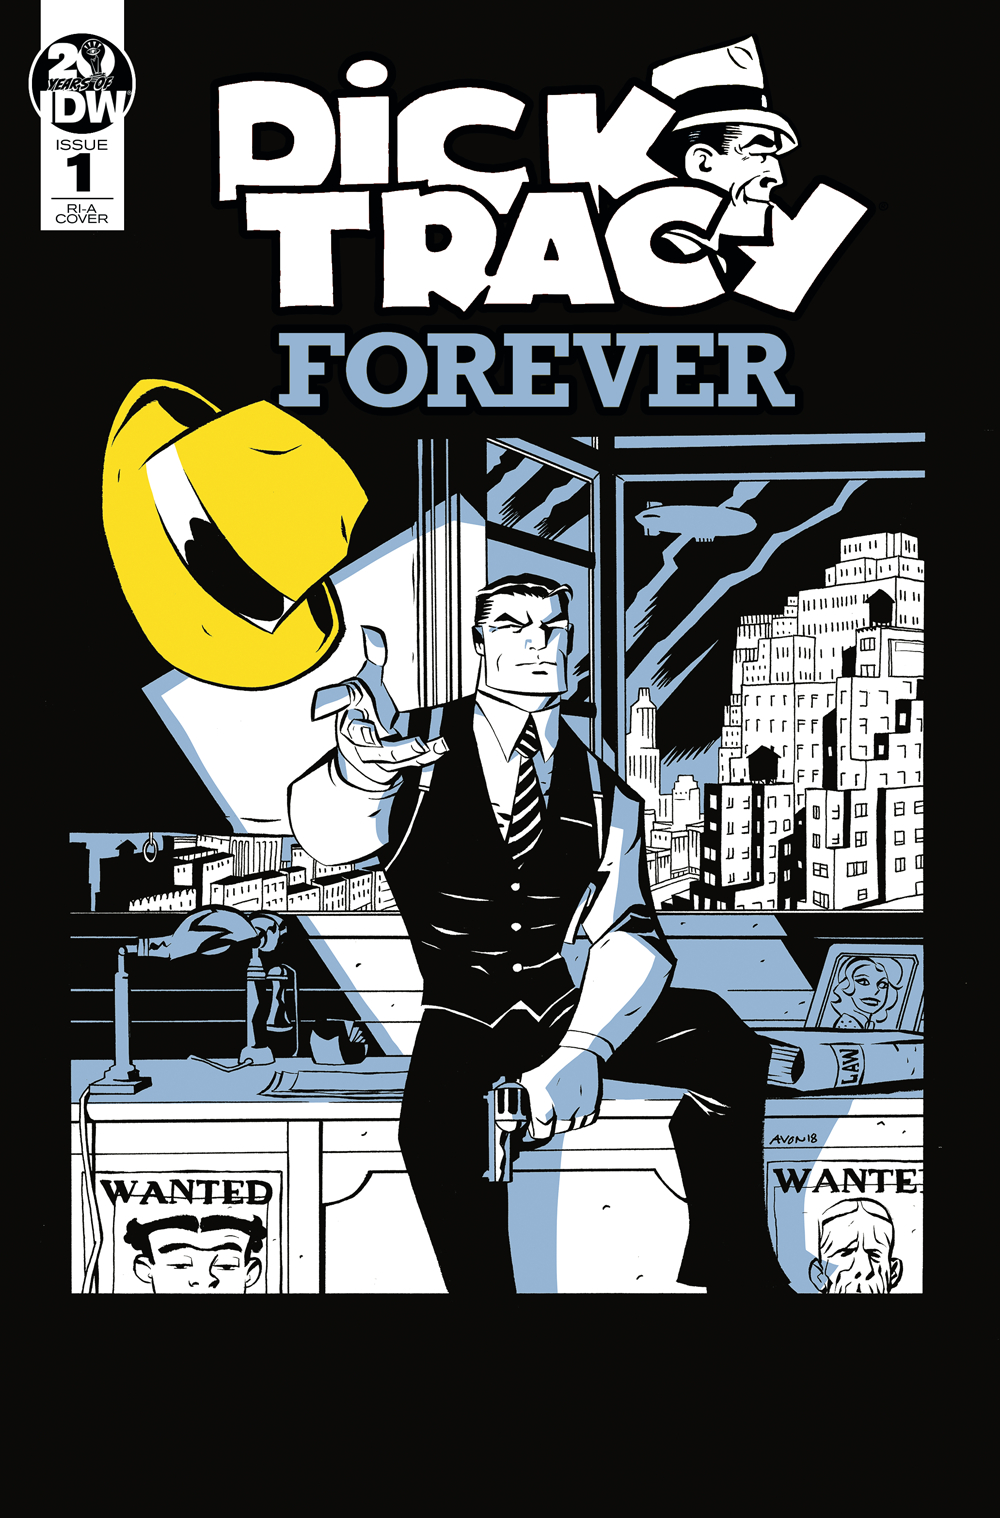 DICK TRACY FOREVER #1 10 COPY INCV OEMING